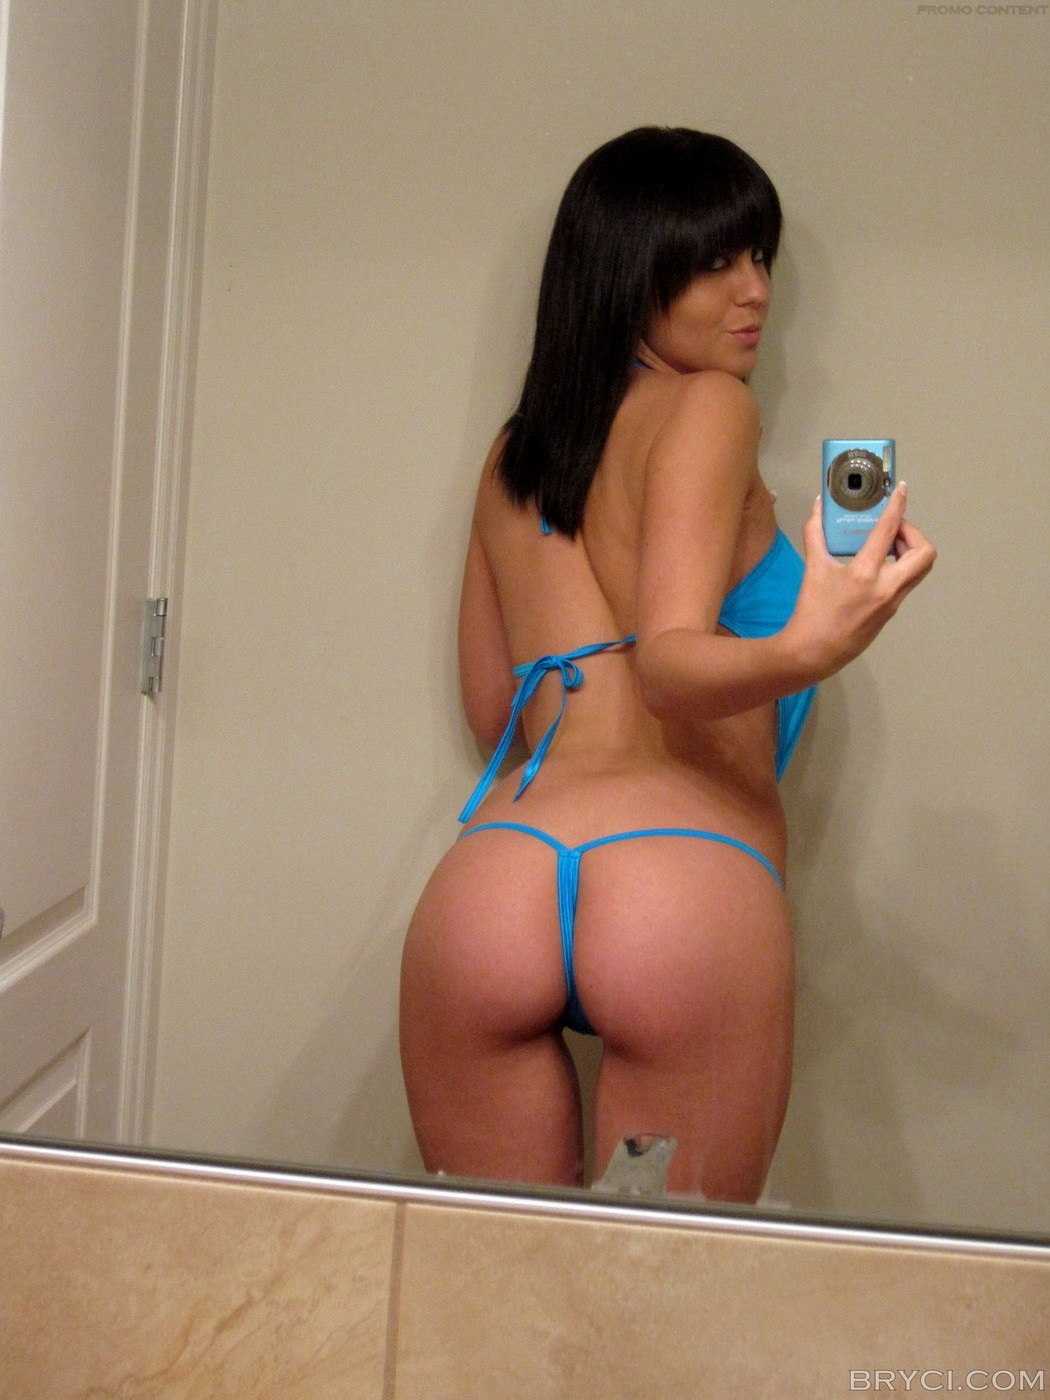 bryci-tits-naked-self-shots-mirror-bathroom-03